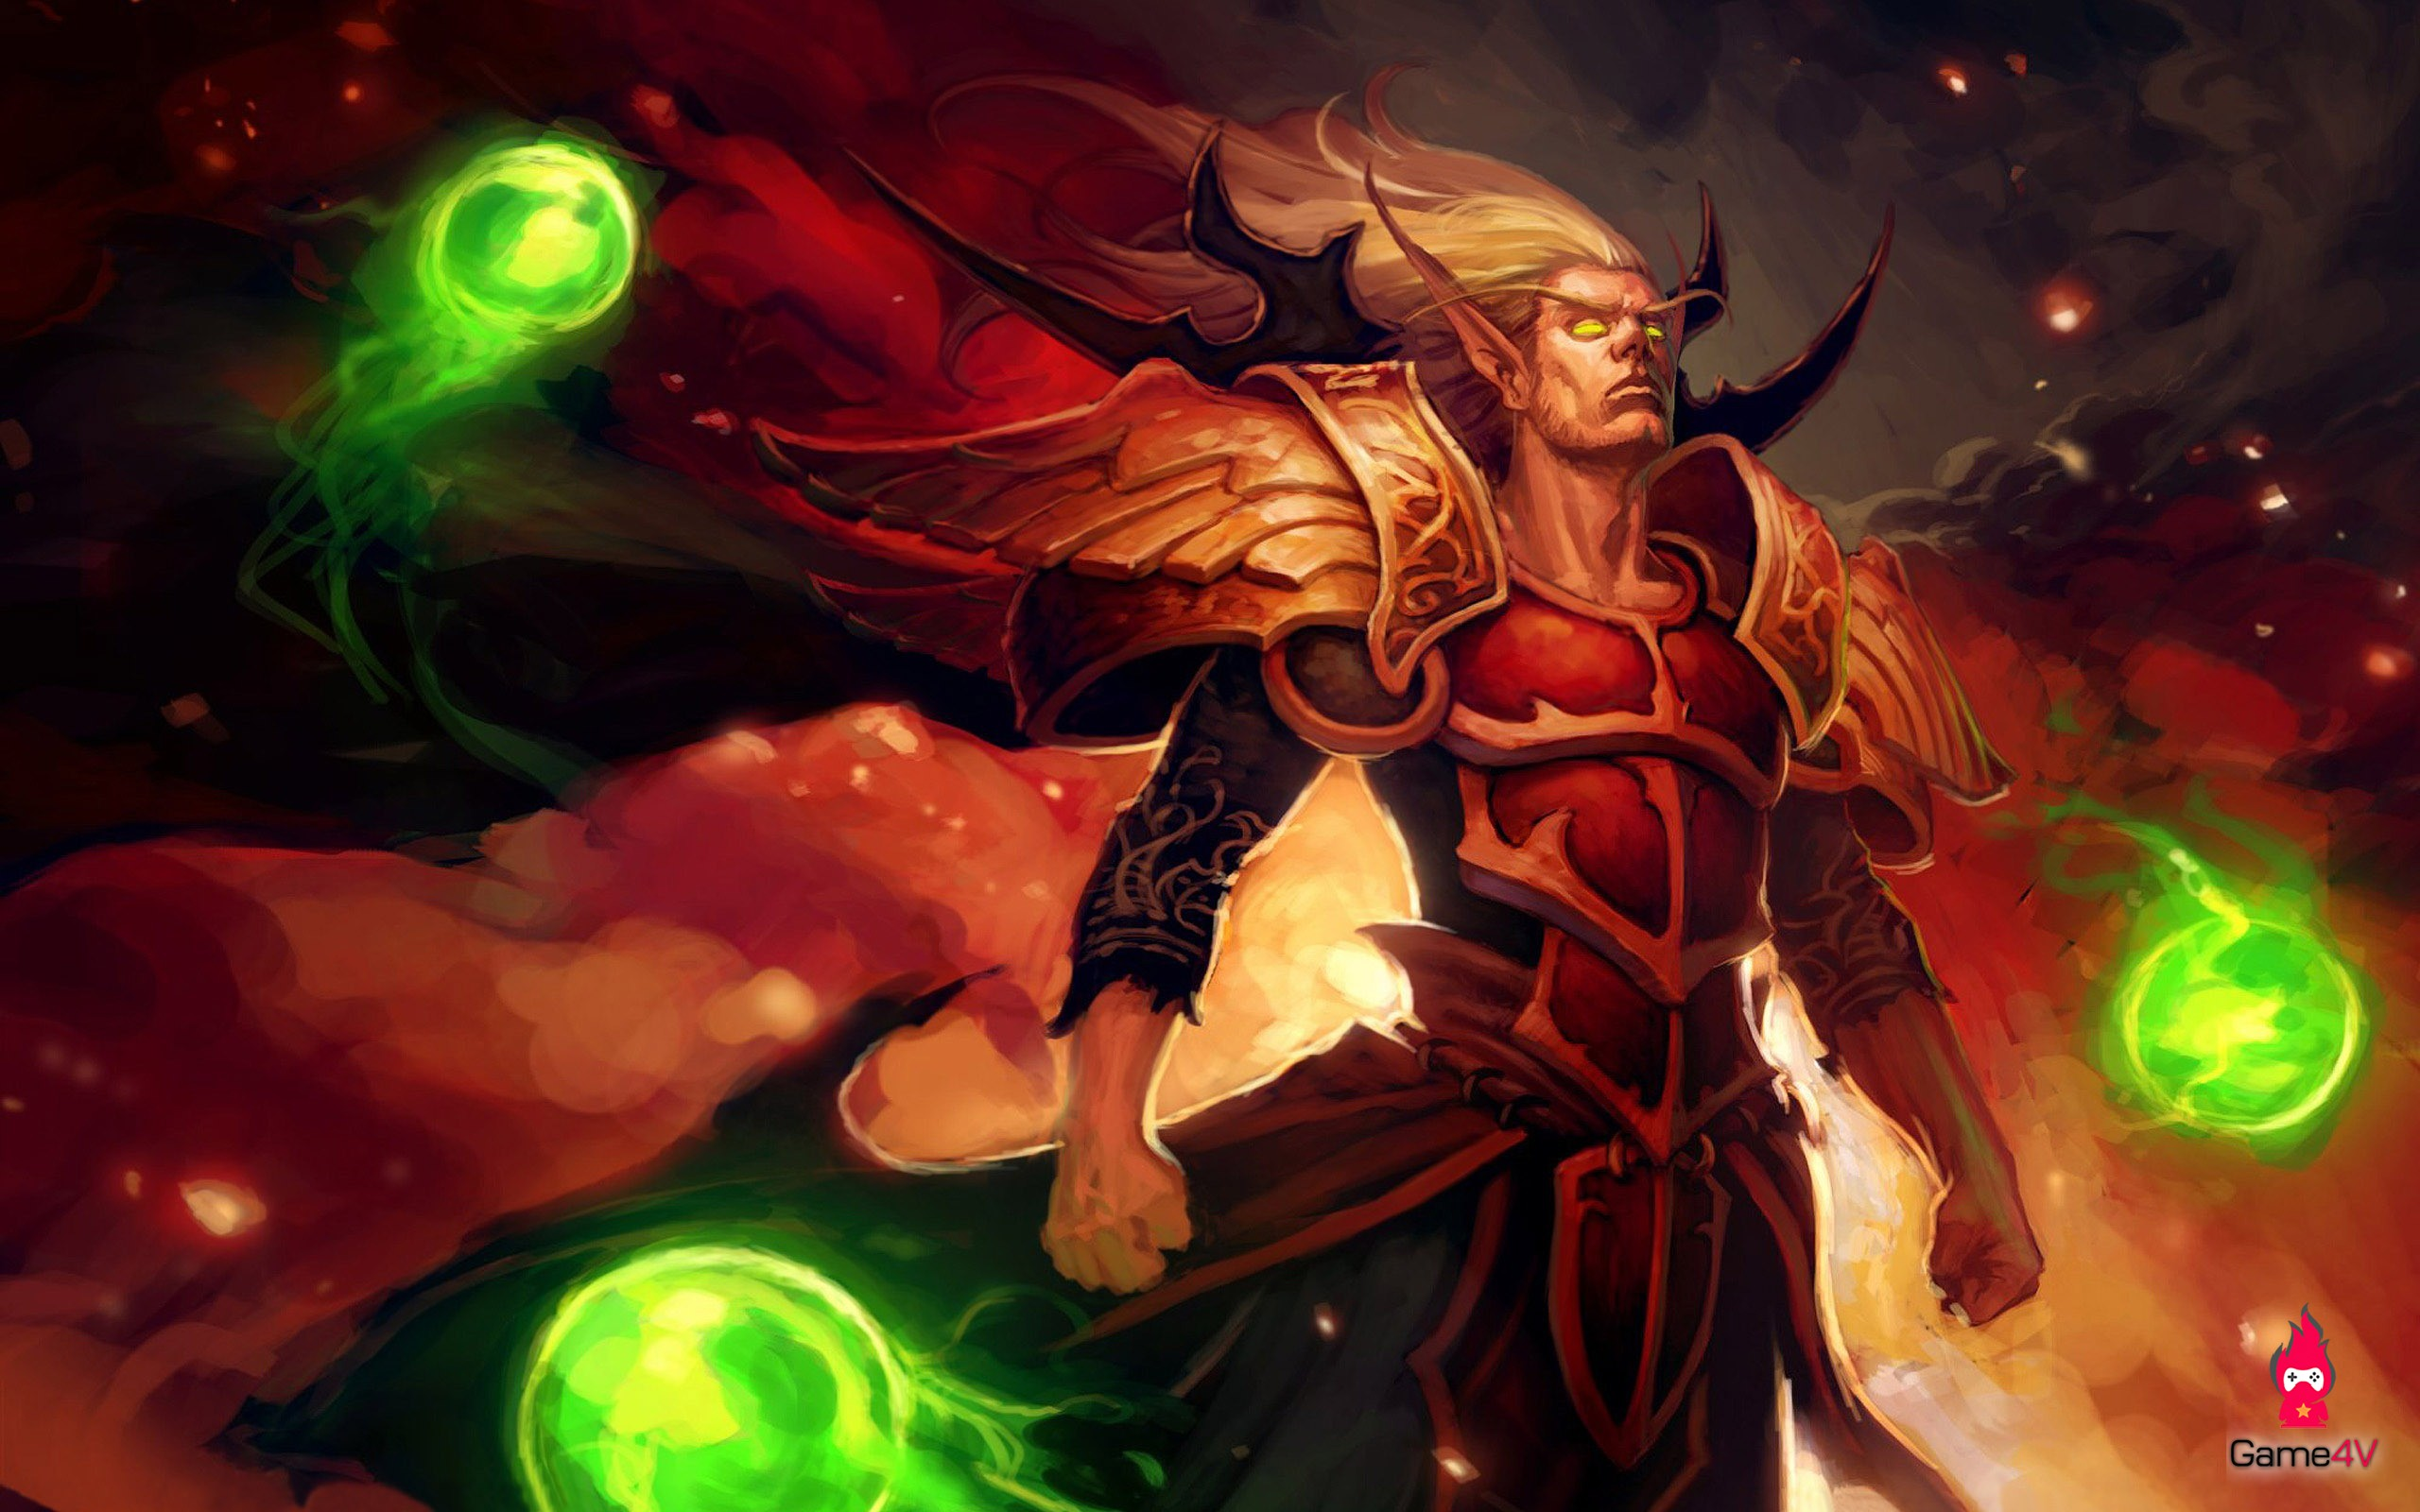 most-best-in-anime-world-of-warcraft-kael-thas-569579